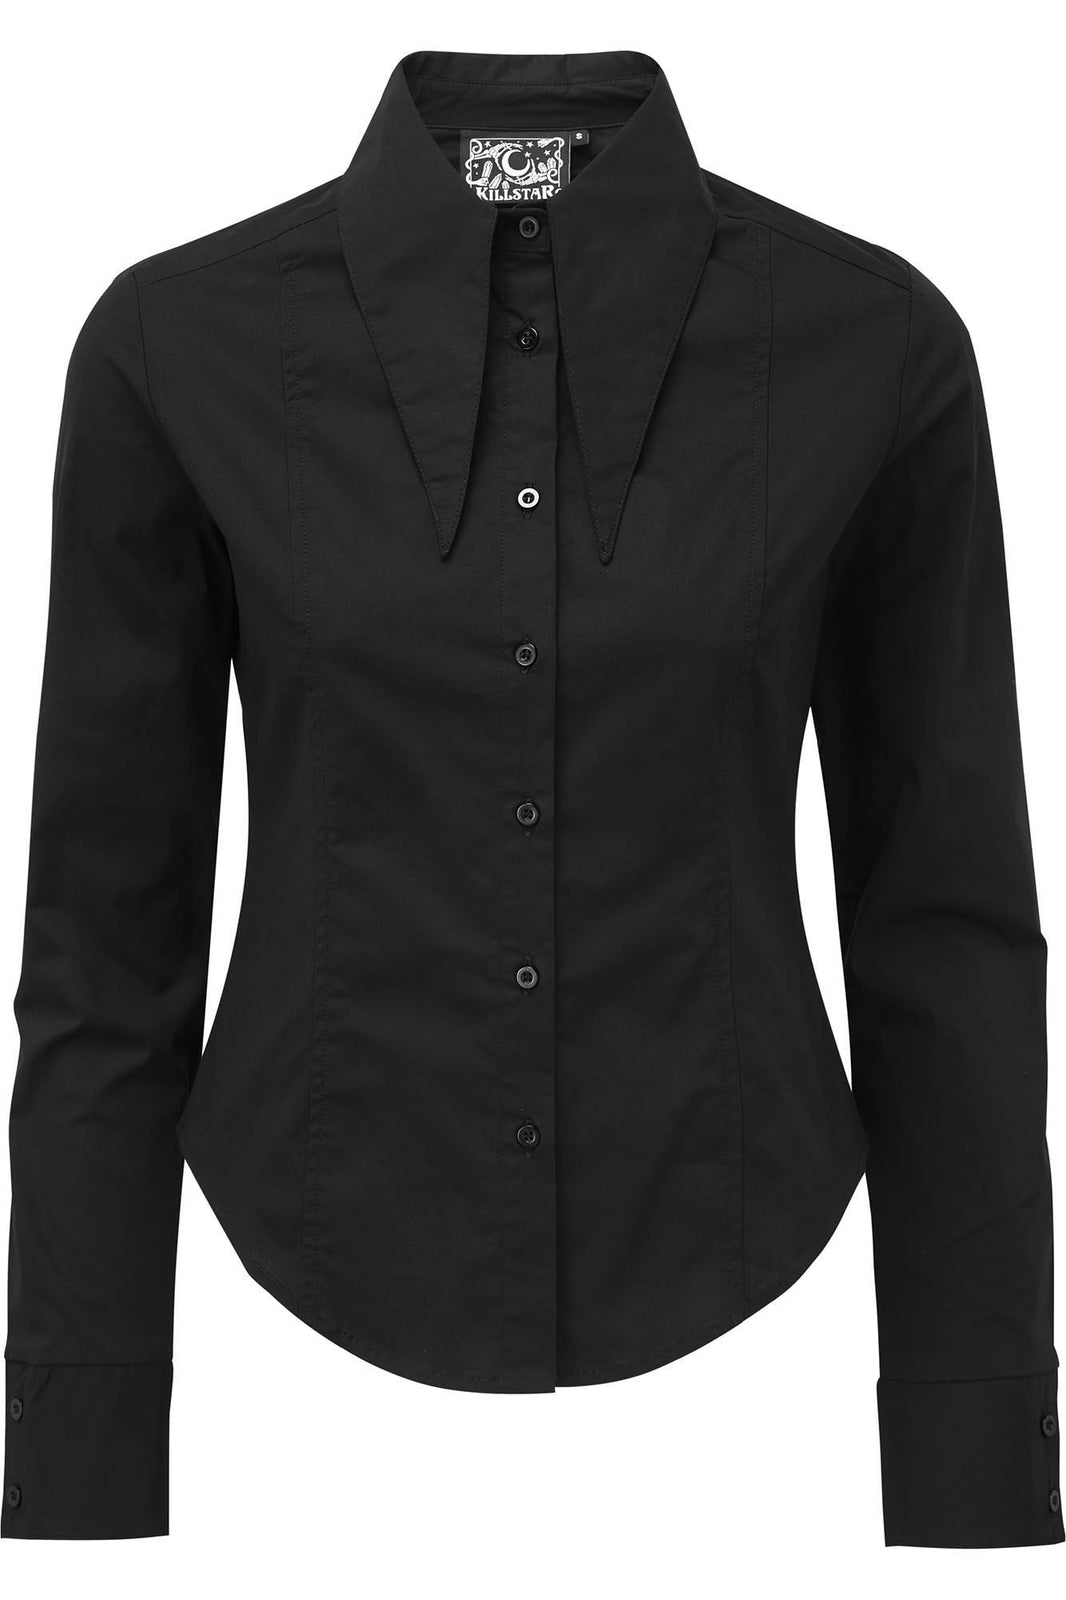 Darby Pointed Collar Shirt